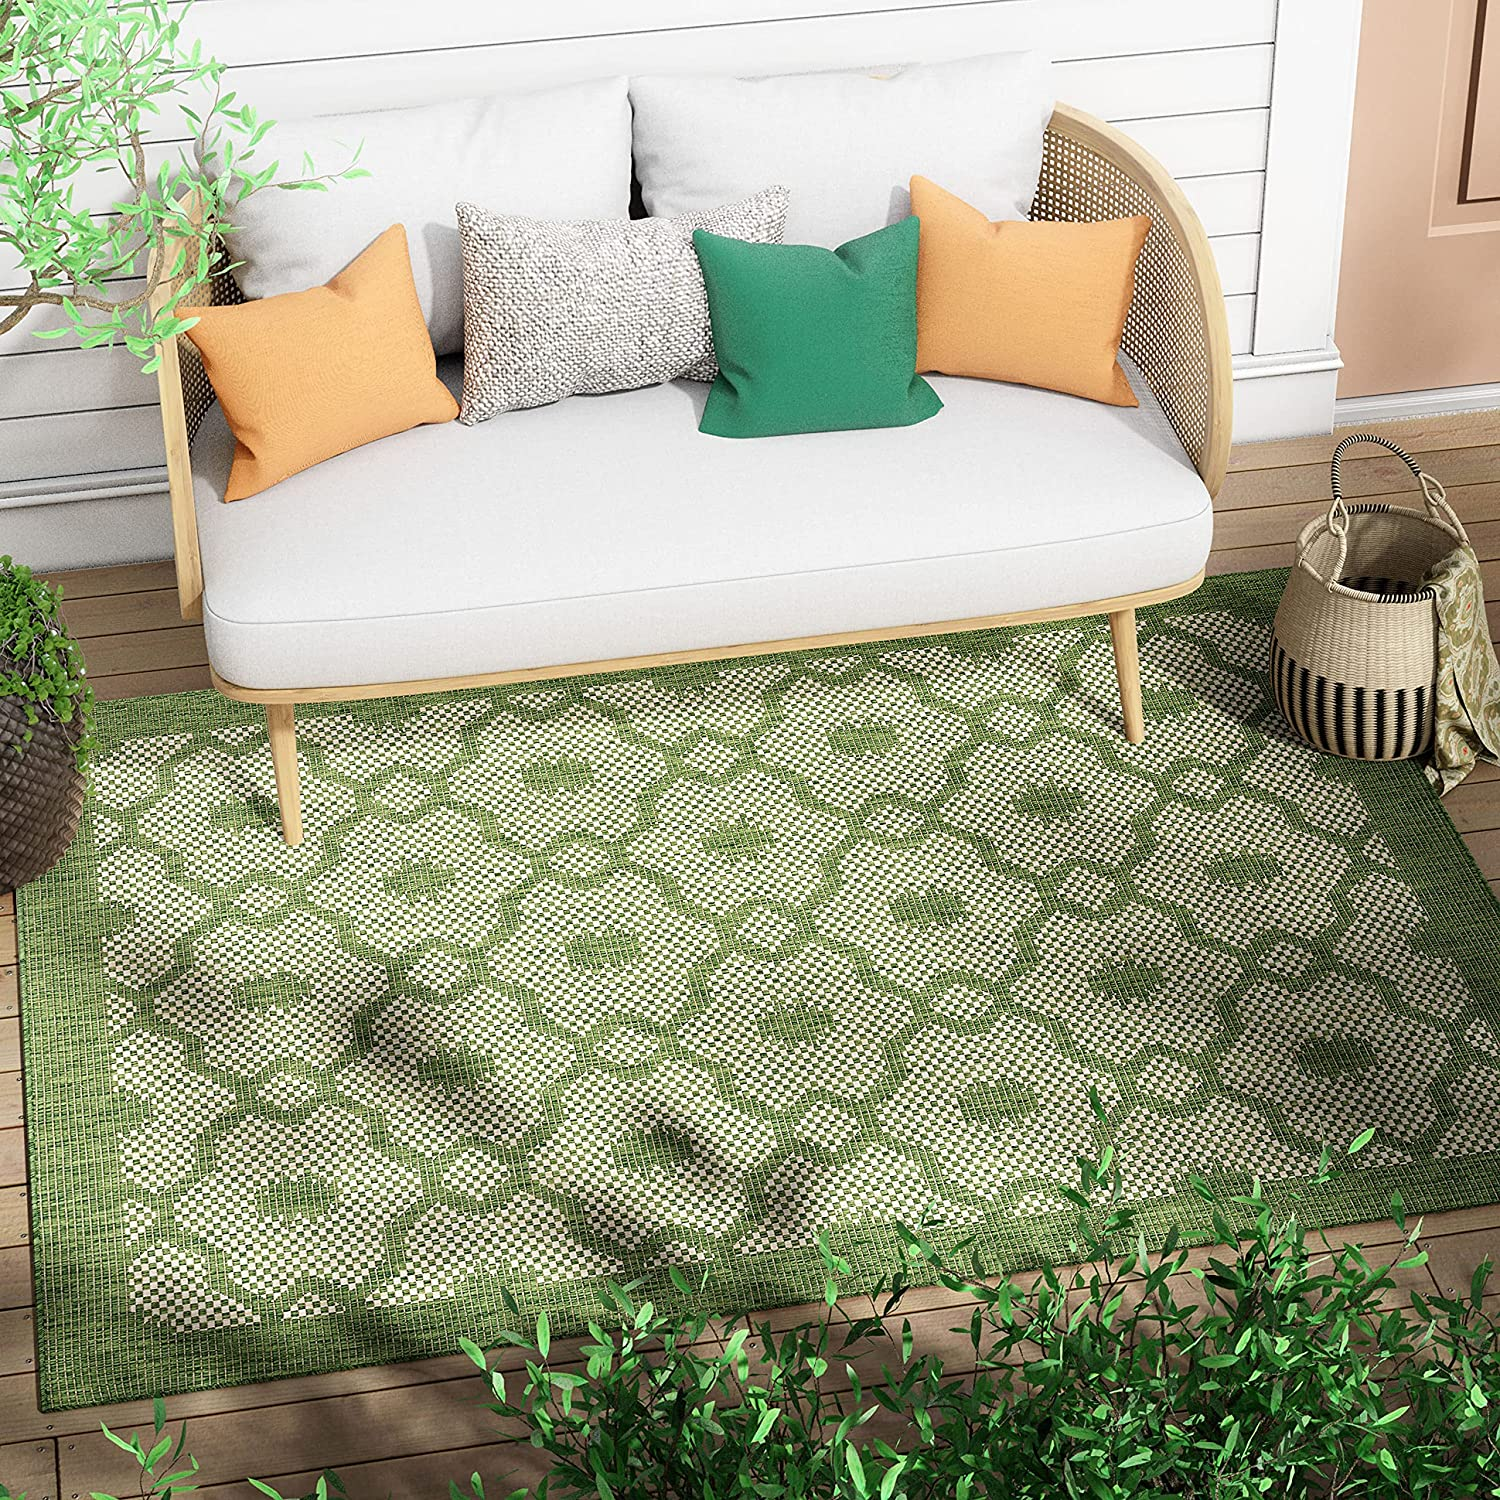 Choice Well Woven Sunna Green Indoor Moroccan Flat-Weave T Outdoor Pile Max 47% OFF